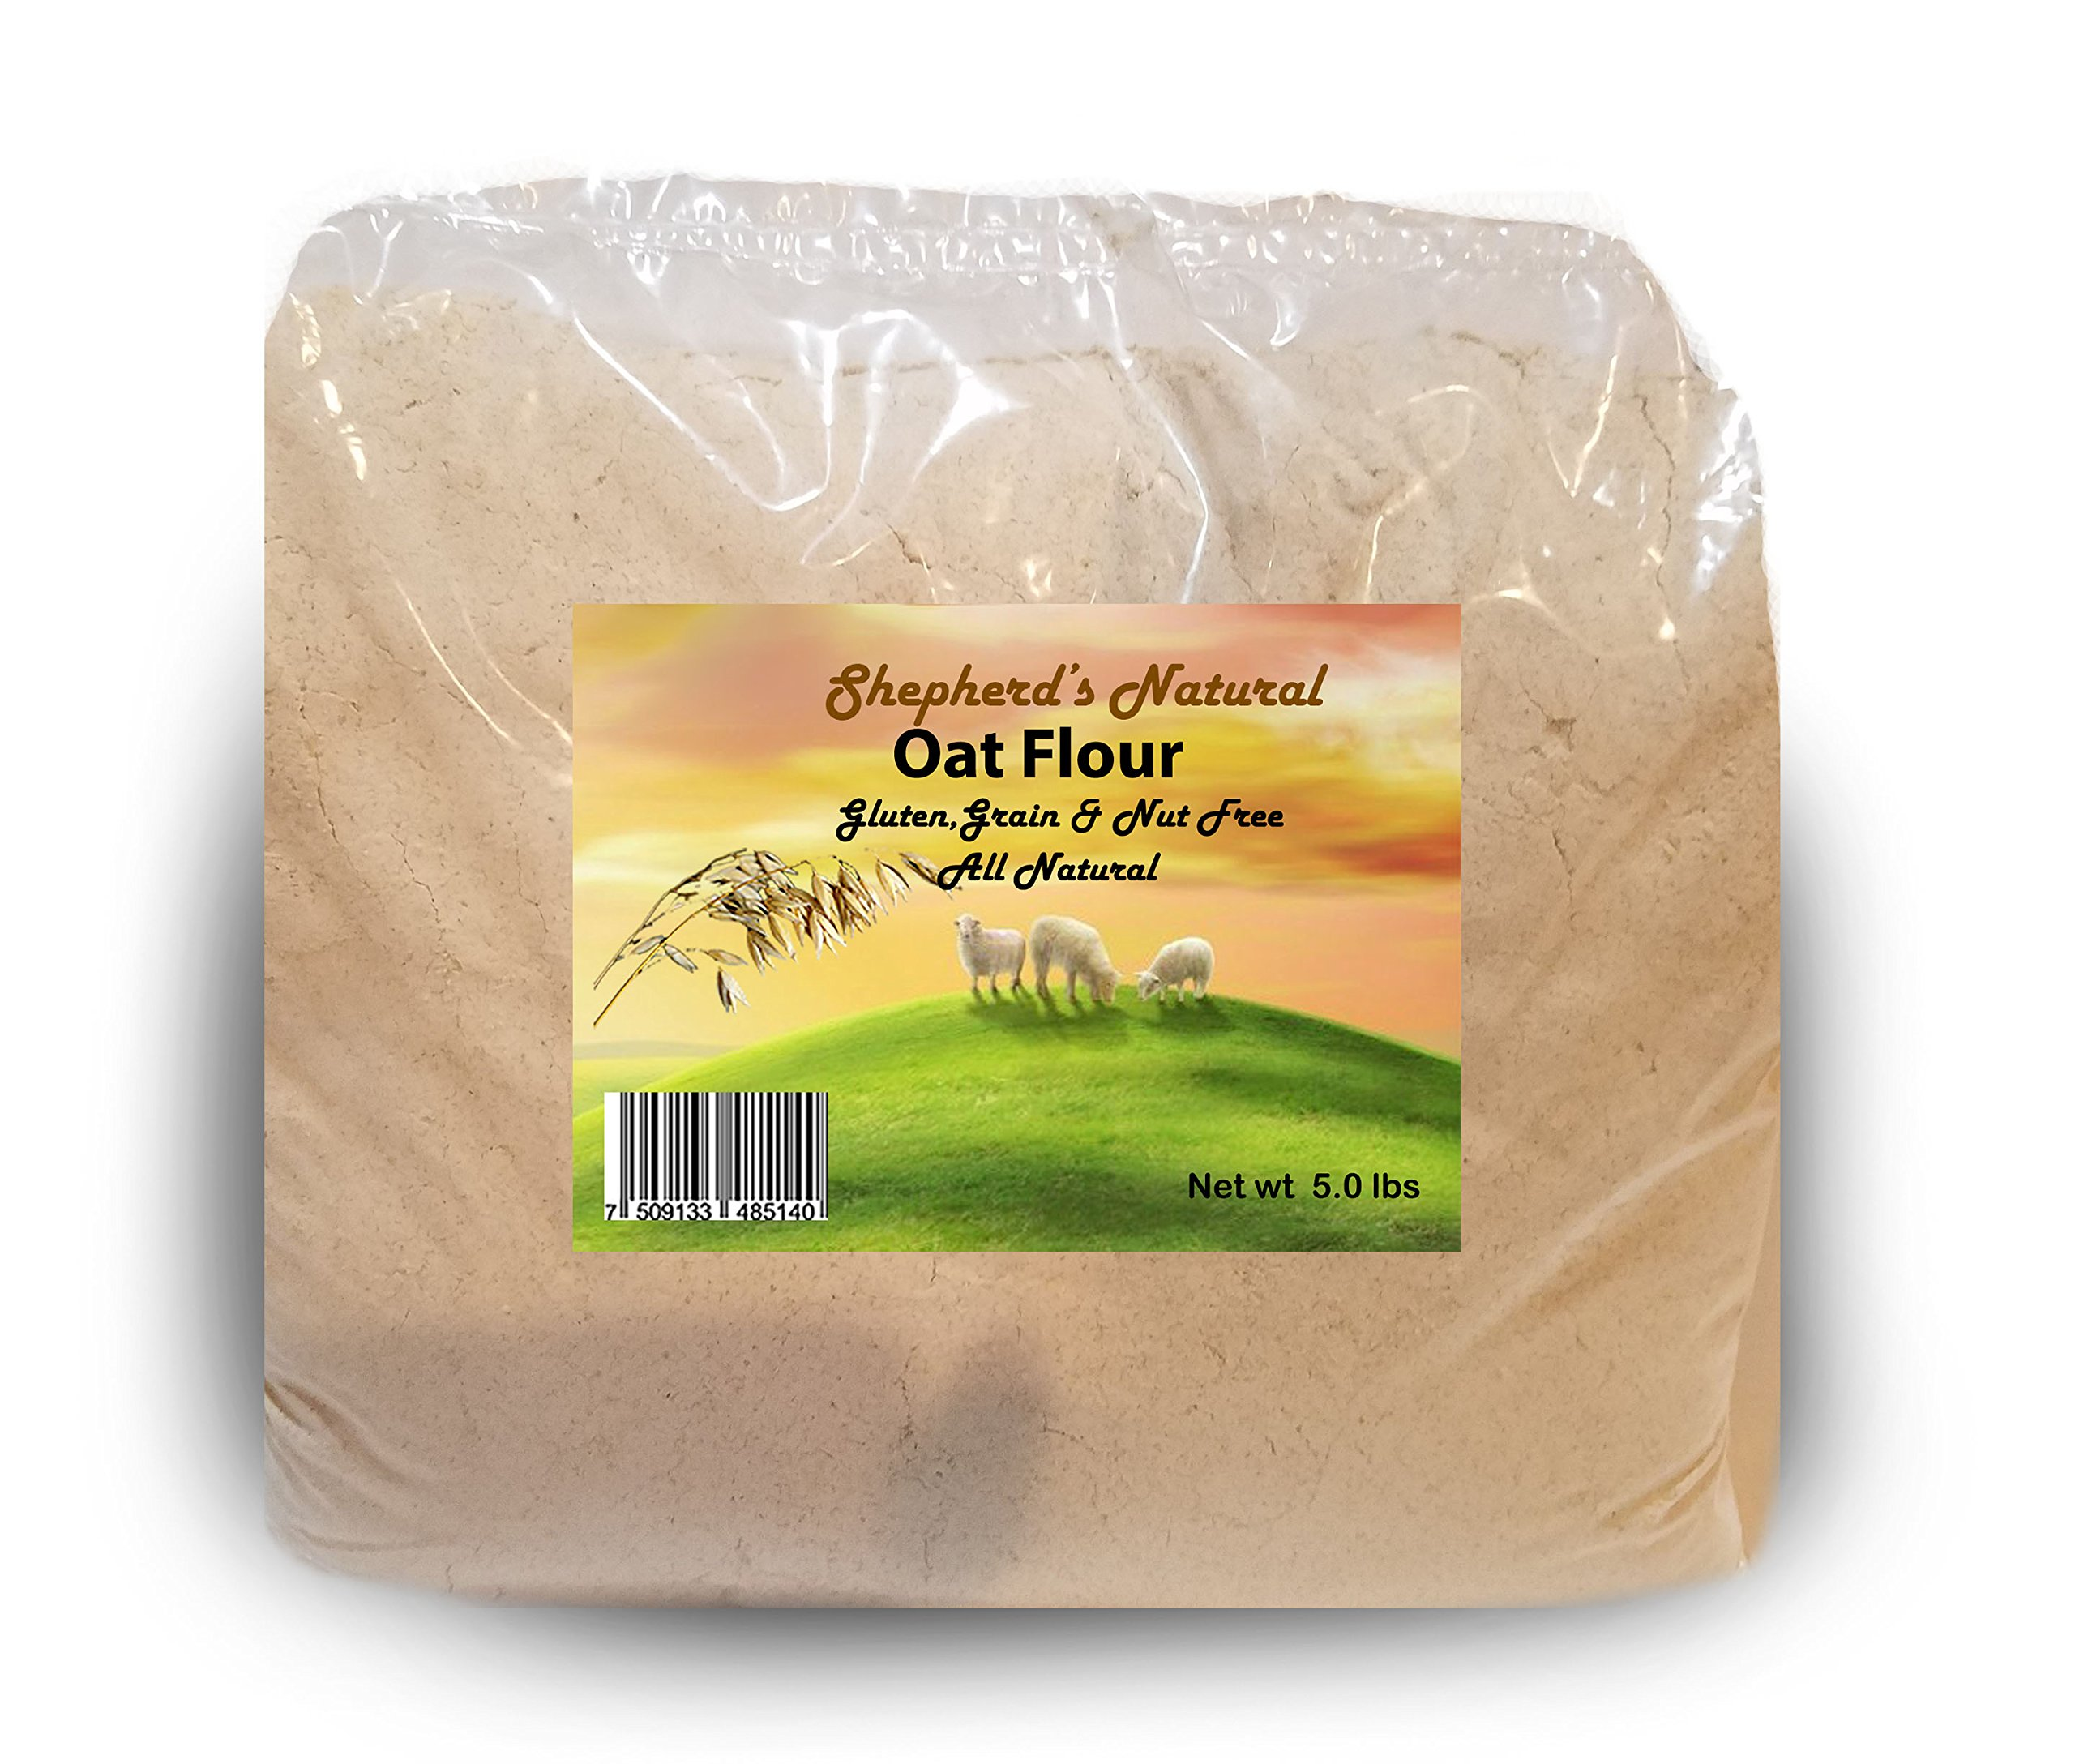 Oat Flour 5 lb/80 oz bag by Shepherd's Natural